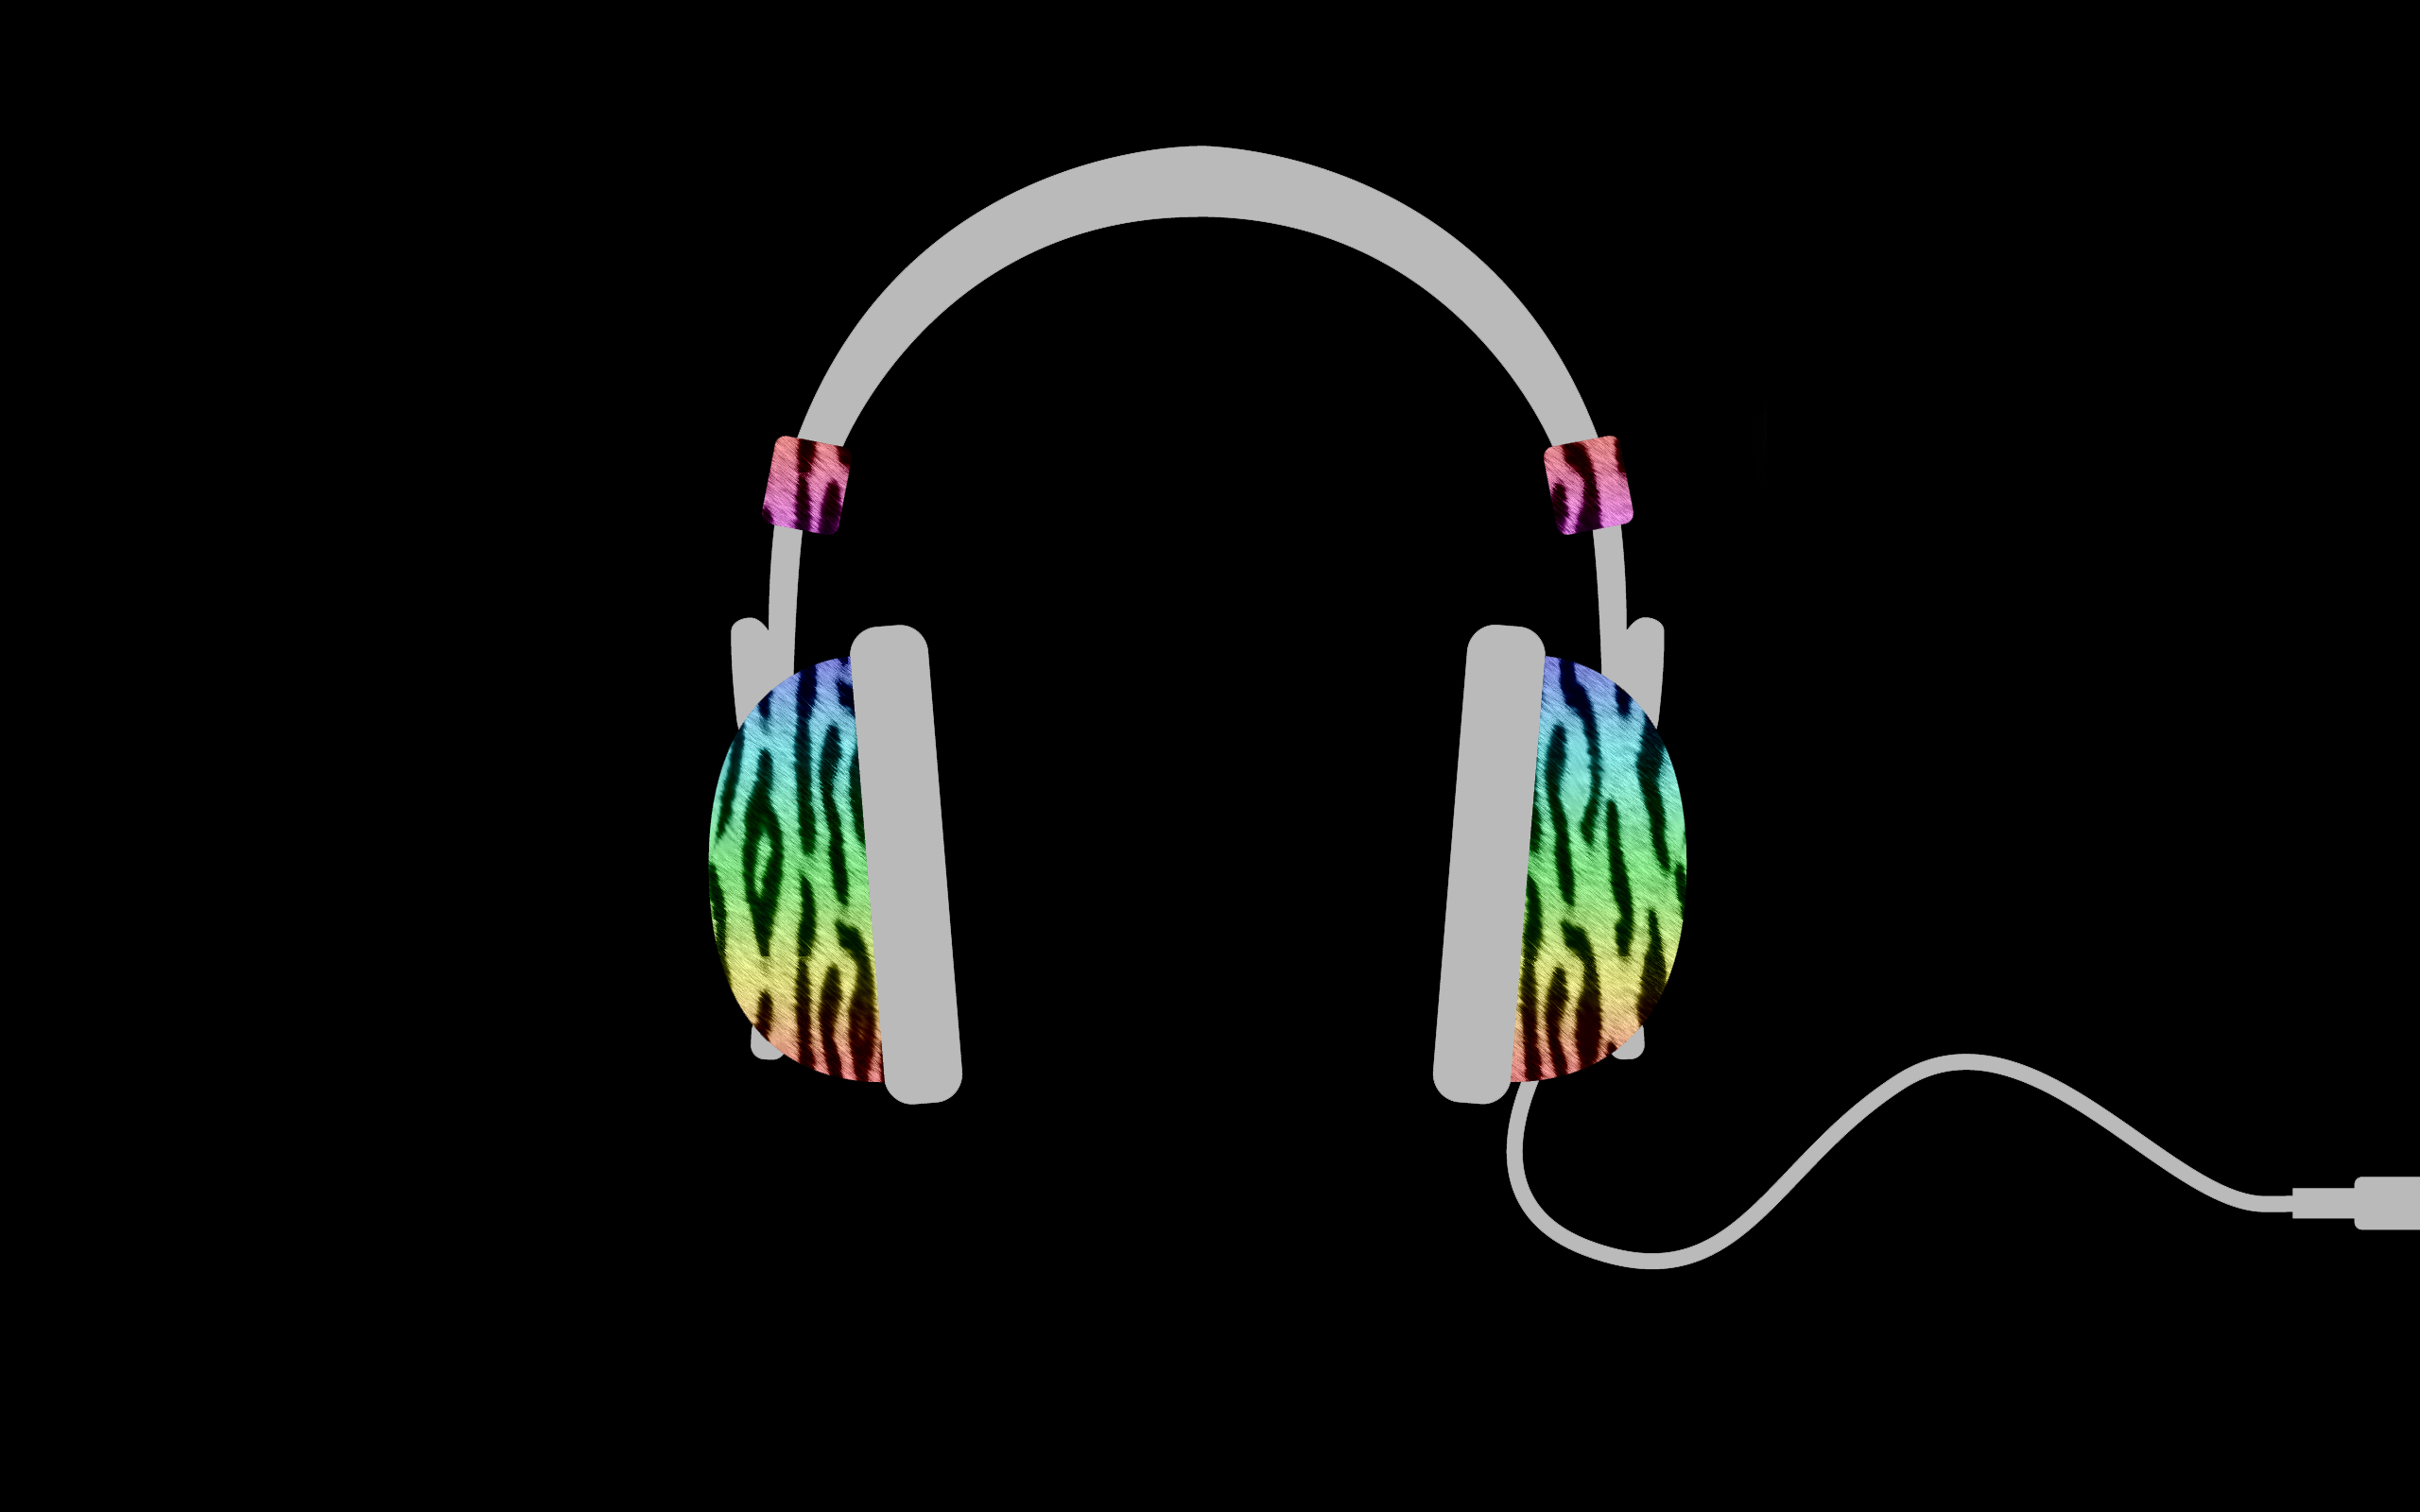 headphones minimalistic rainbows zebras HD Wallpaper